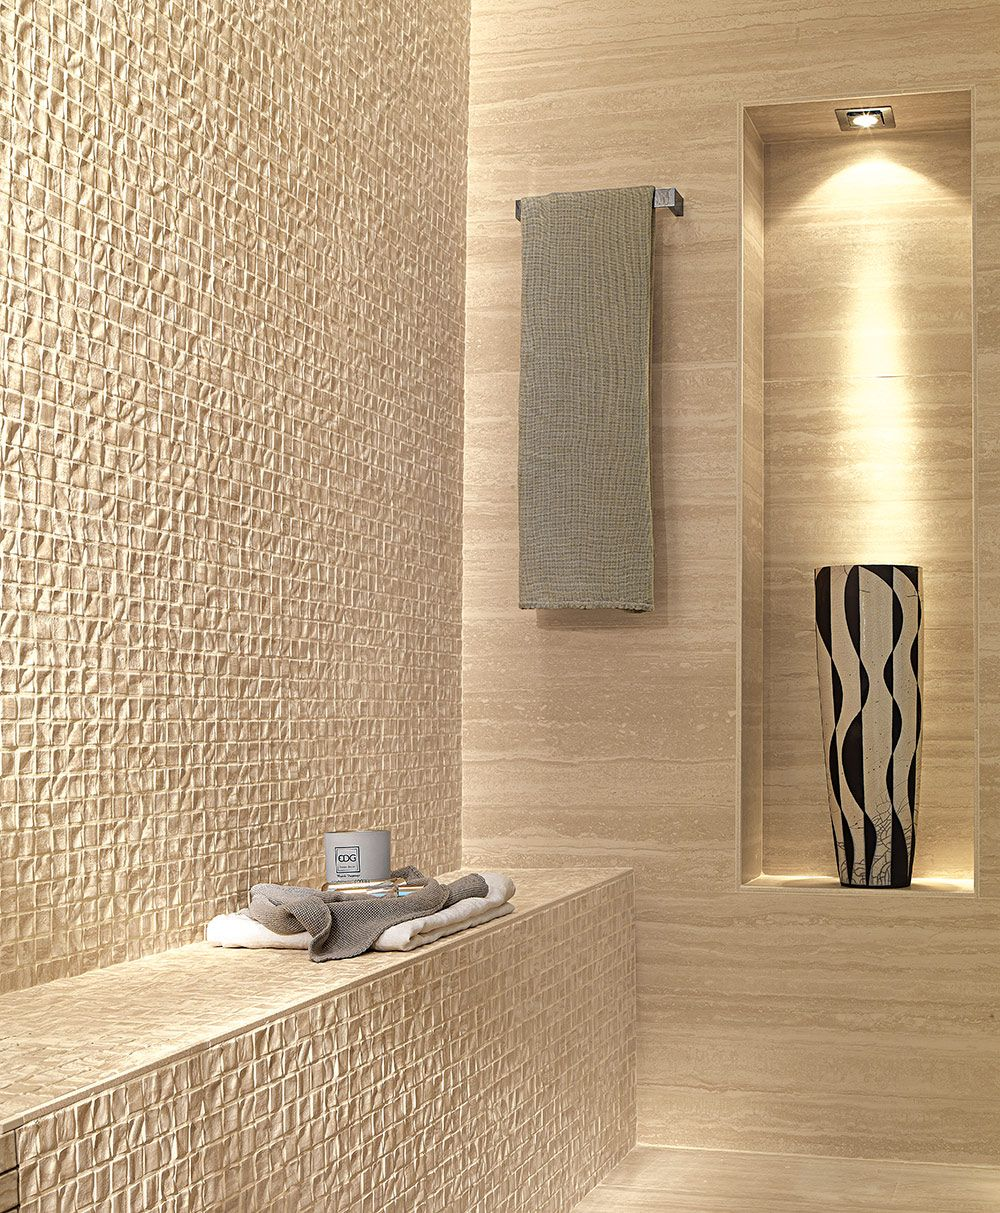 Bathroom Garden State Tile In 2020 Bathroom Design